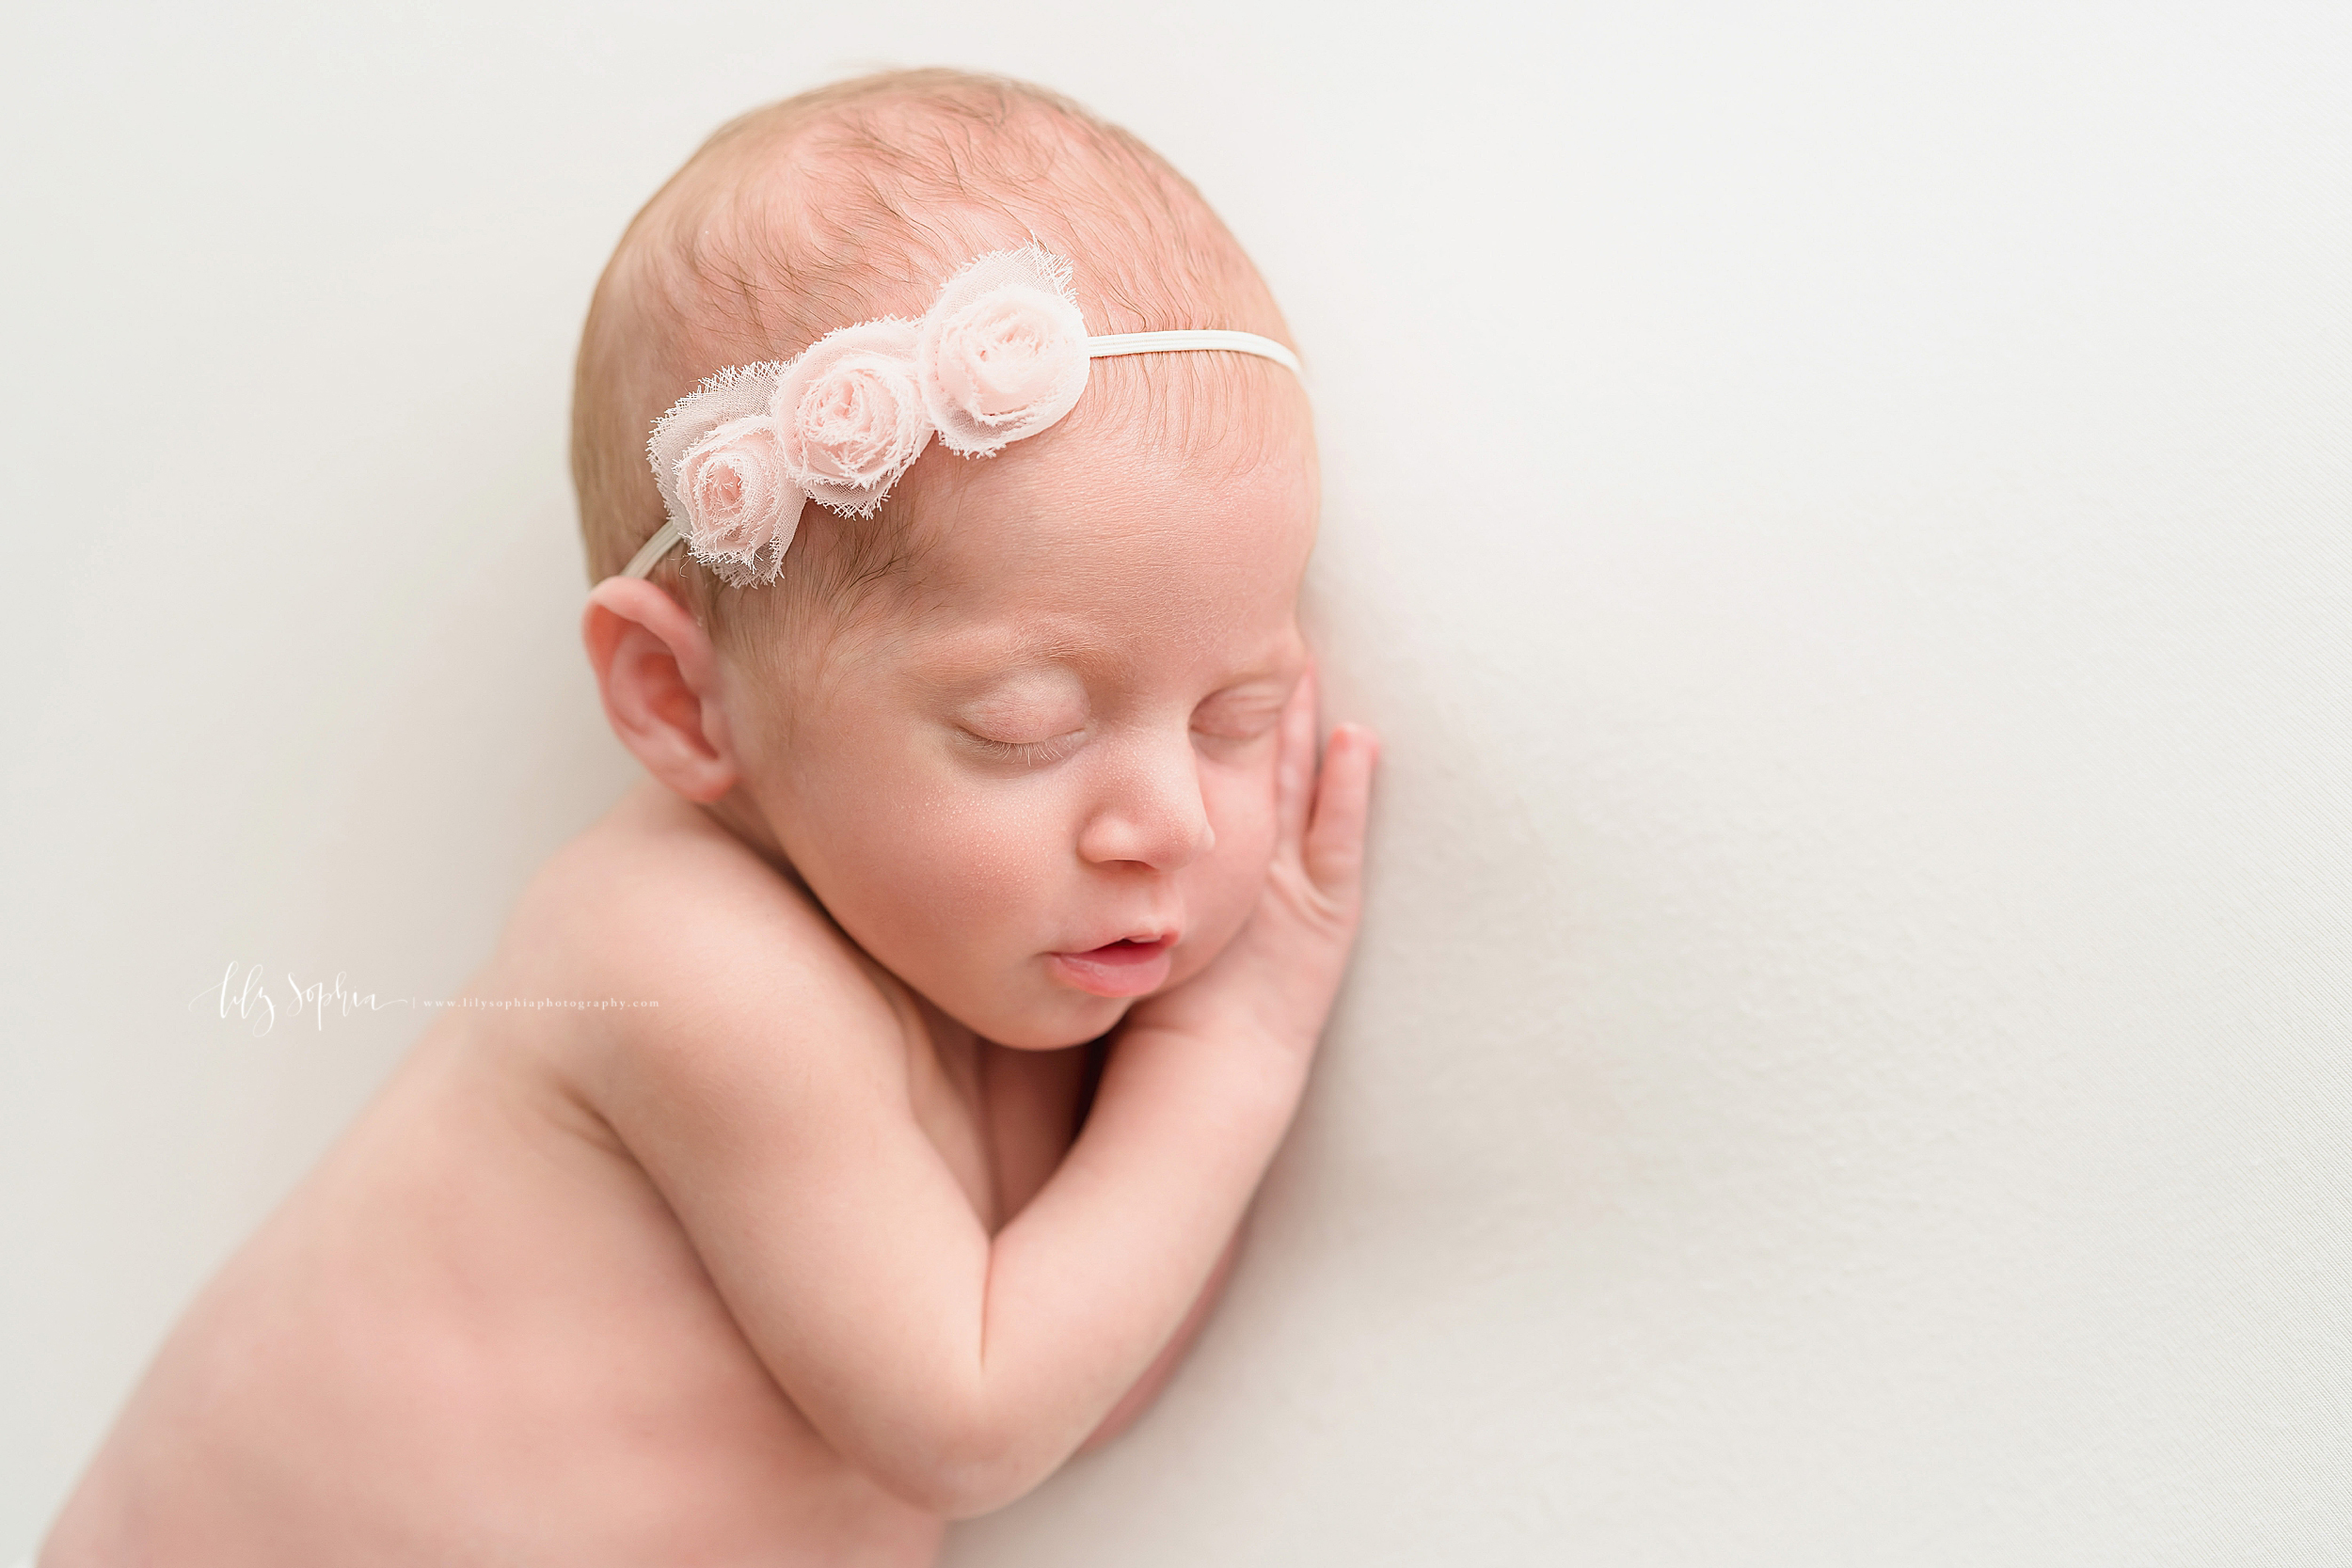 atlanta-decatur-candler-park-sandy-springs-buckhead-virginia-highlands-west-end-decatur-lily-sophia-photography-identical-twin-baby-newborn-girls-toddler-big-brother-family-photos_2044.jpg